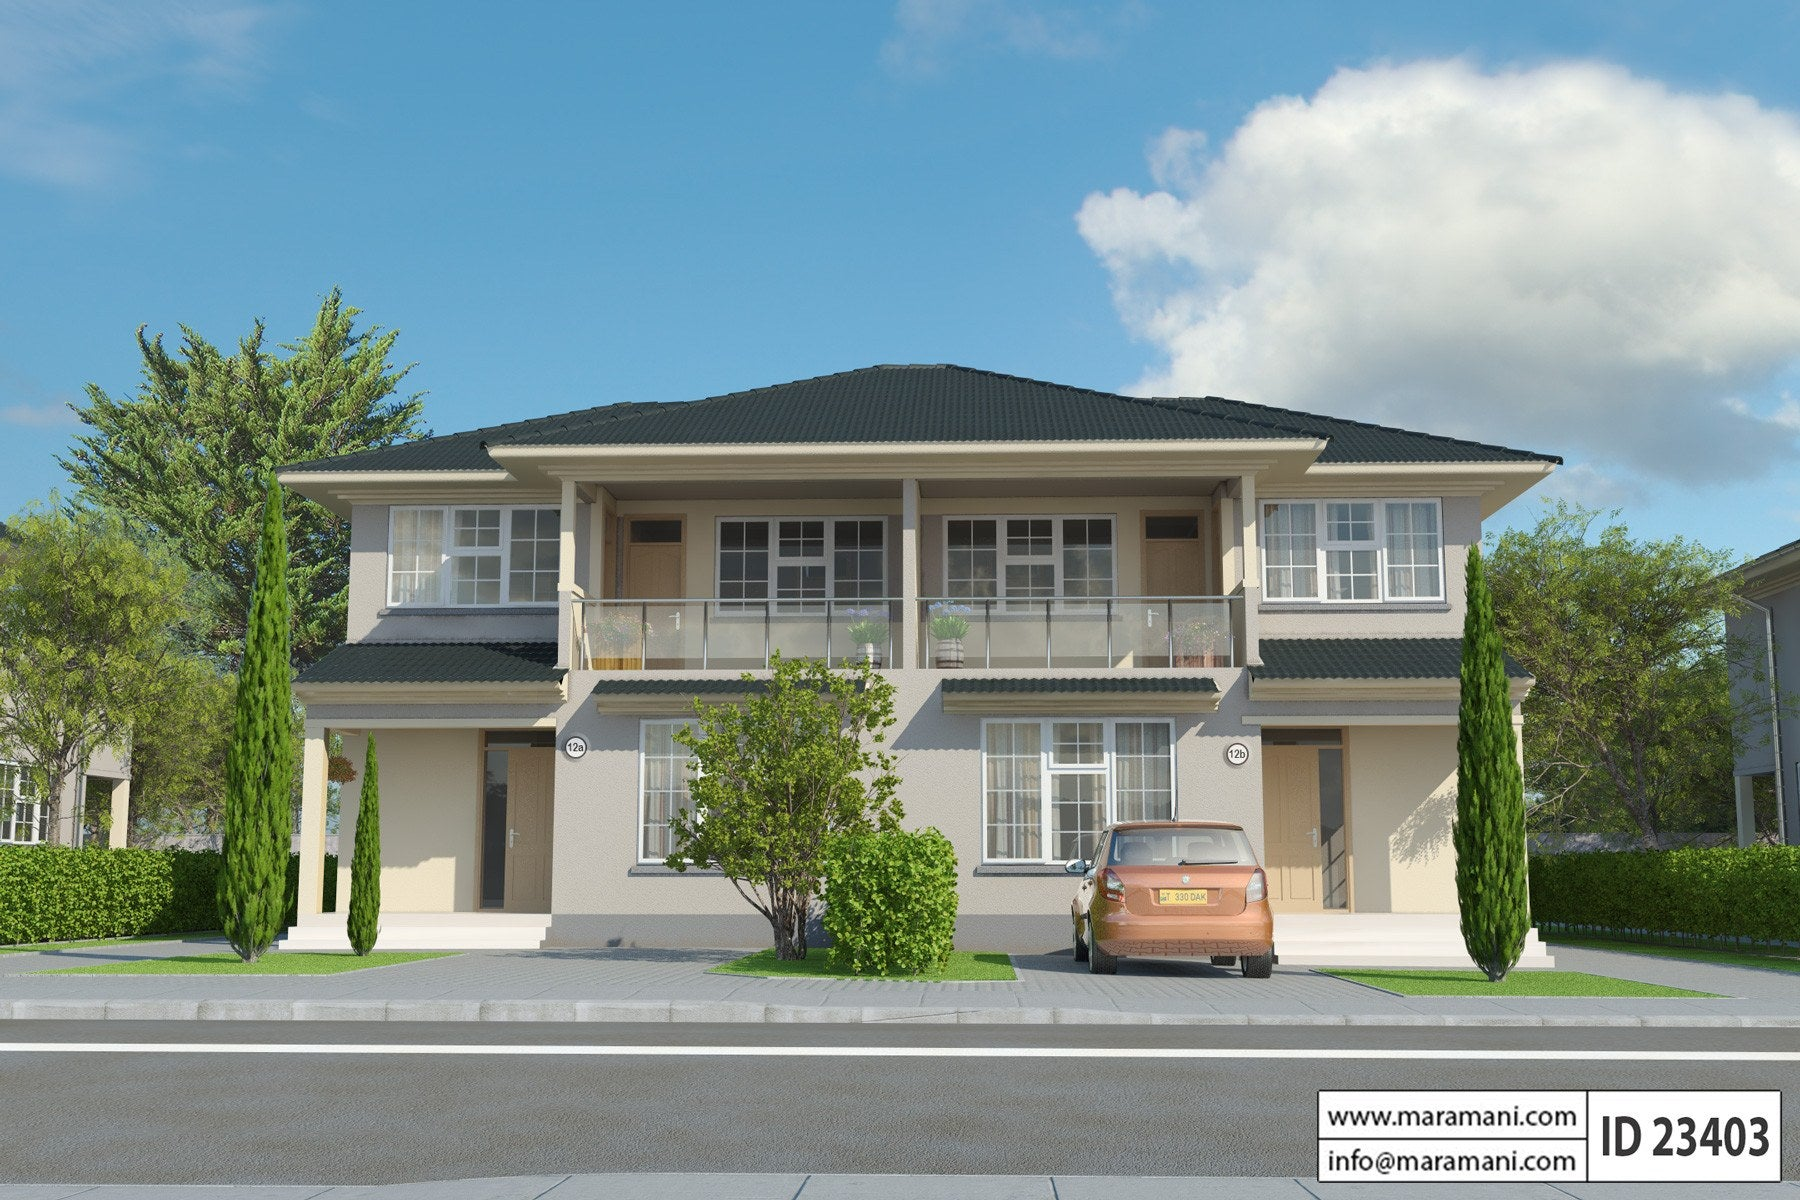 3 Bedroom Duplex House Plan - ID 23403 - House Designs by ... on kitchen house plans, lounge house plans, 4 bedrooms house plans, bathroom house plans, bachelor house plans, studio house plans, 3 bedrooms house plans,